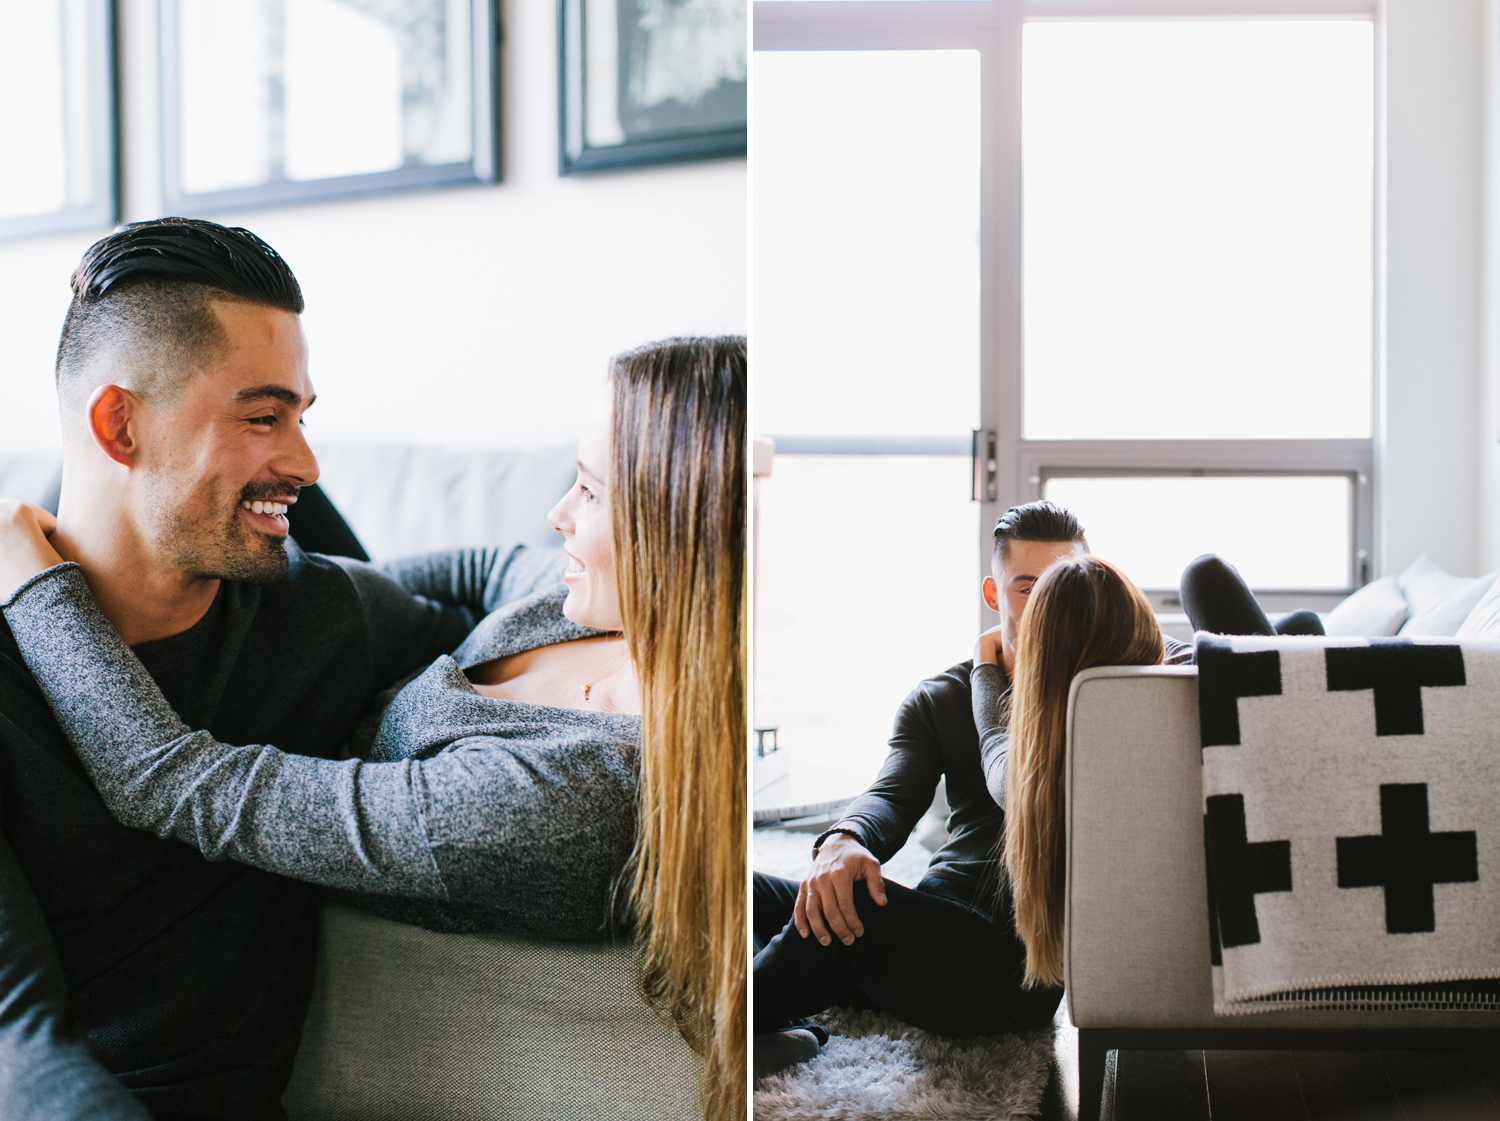 Jodi-Blk-fashion-blogger-Jose-Lopez-fit-michael-rousseau-photography-streetwear-fashion-engagement-session009.jpg